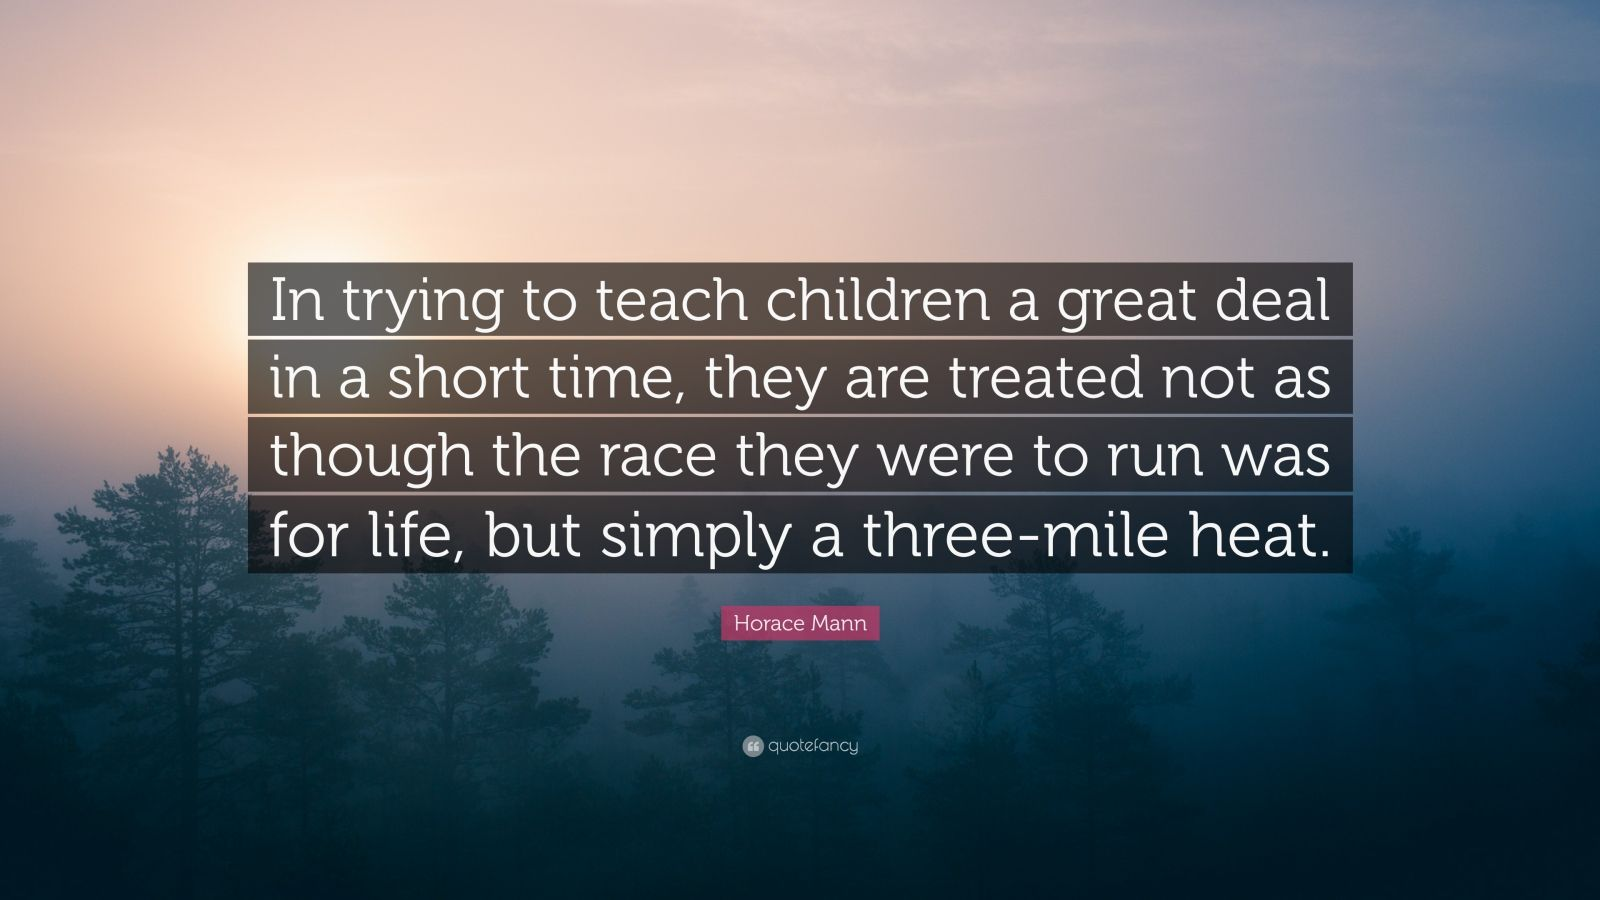 "Horace Mann Quote: ""In trying to teach children a great deal in a short time, they are treated not as though the race they were to run was for life, but simply a three-mile heat."""